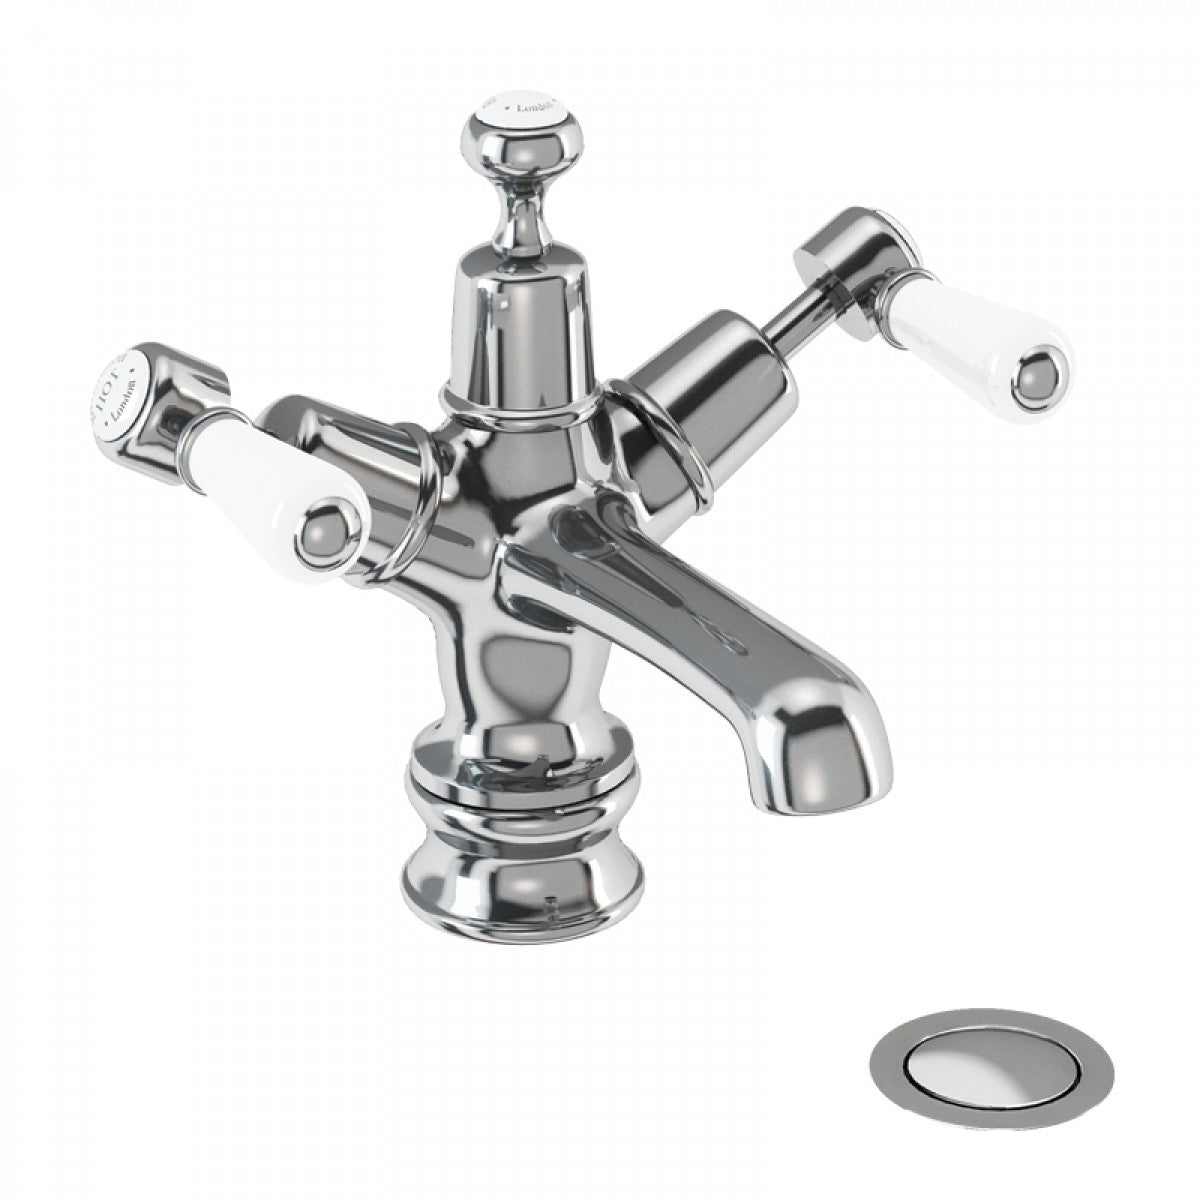 BURLINGTON KENSINGTON BASIN MIXER TAP WITH HIGH CENTRAL INDICE AND WASTE